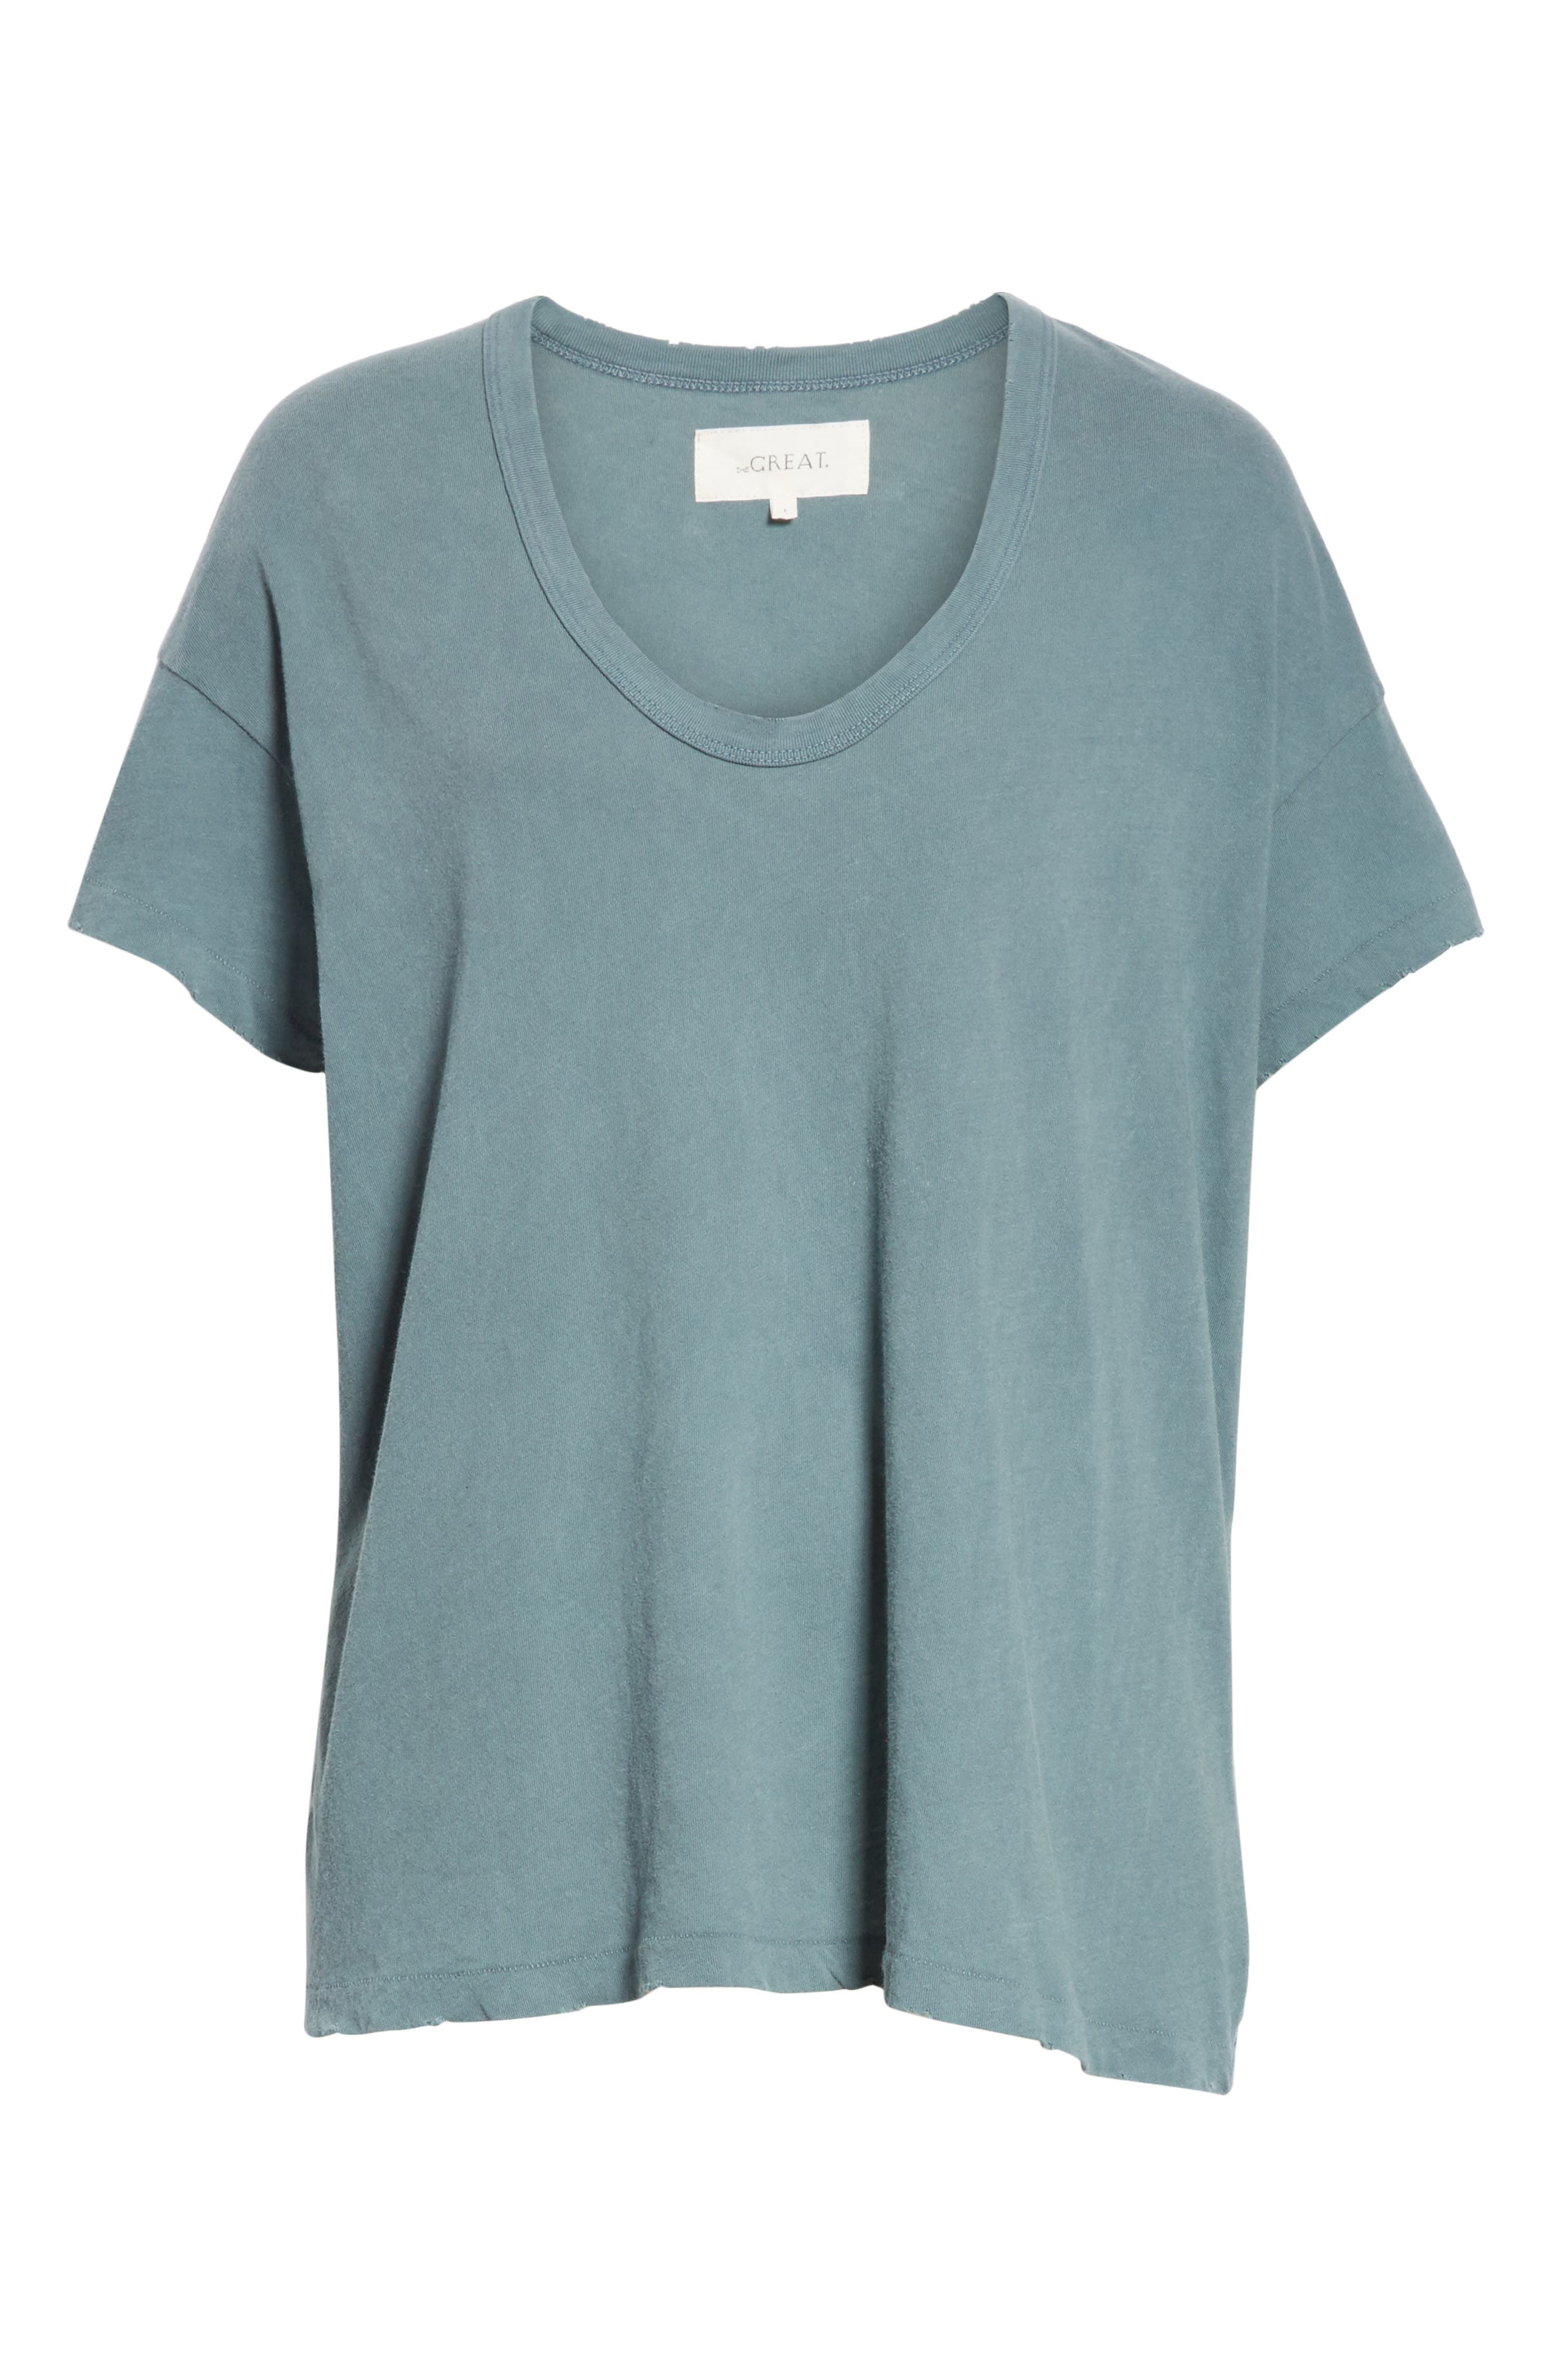 U-Neck Tee,                             Alternate thumbnail 6, color,                             MOTTLED BLUE